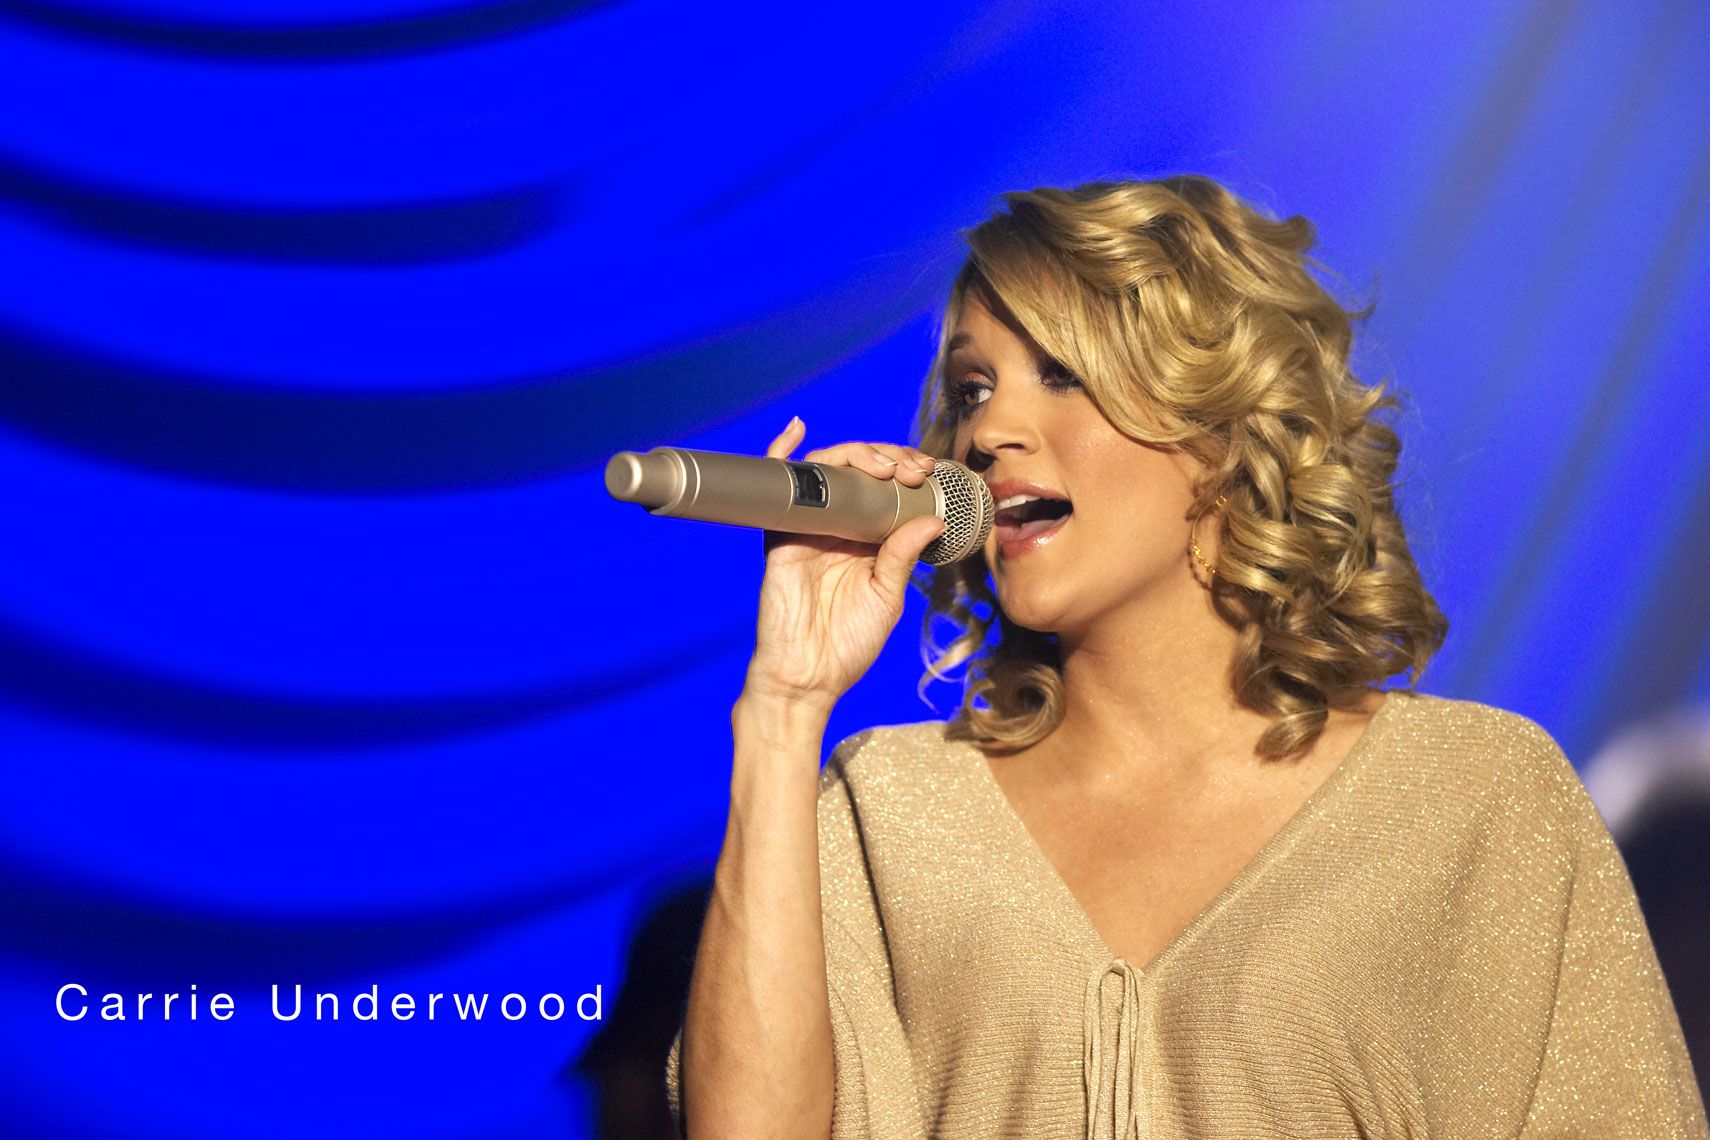 Carrie Underwood/concert/Mystic Lake Casino/lifestyle photo